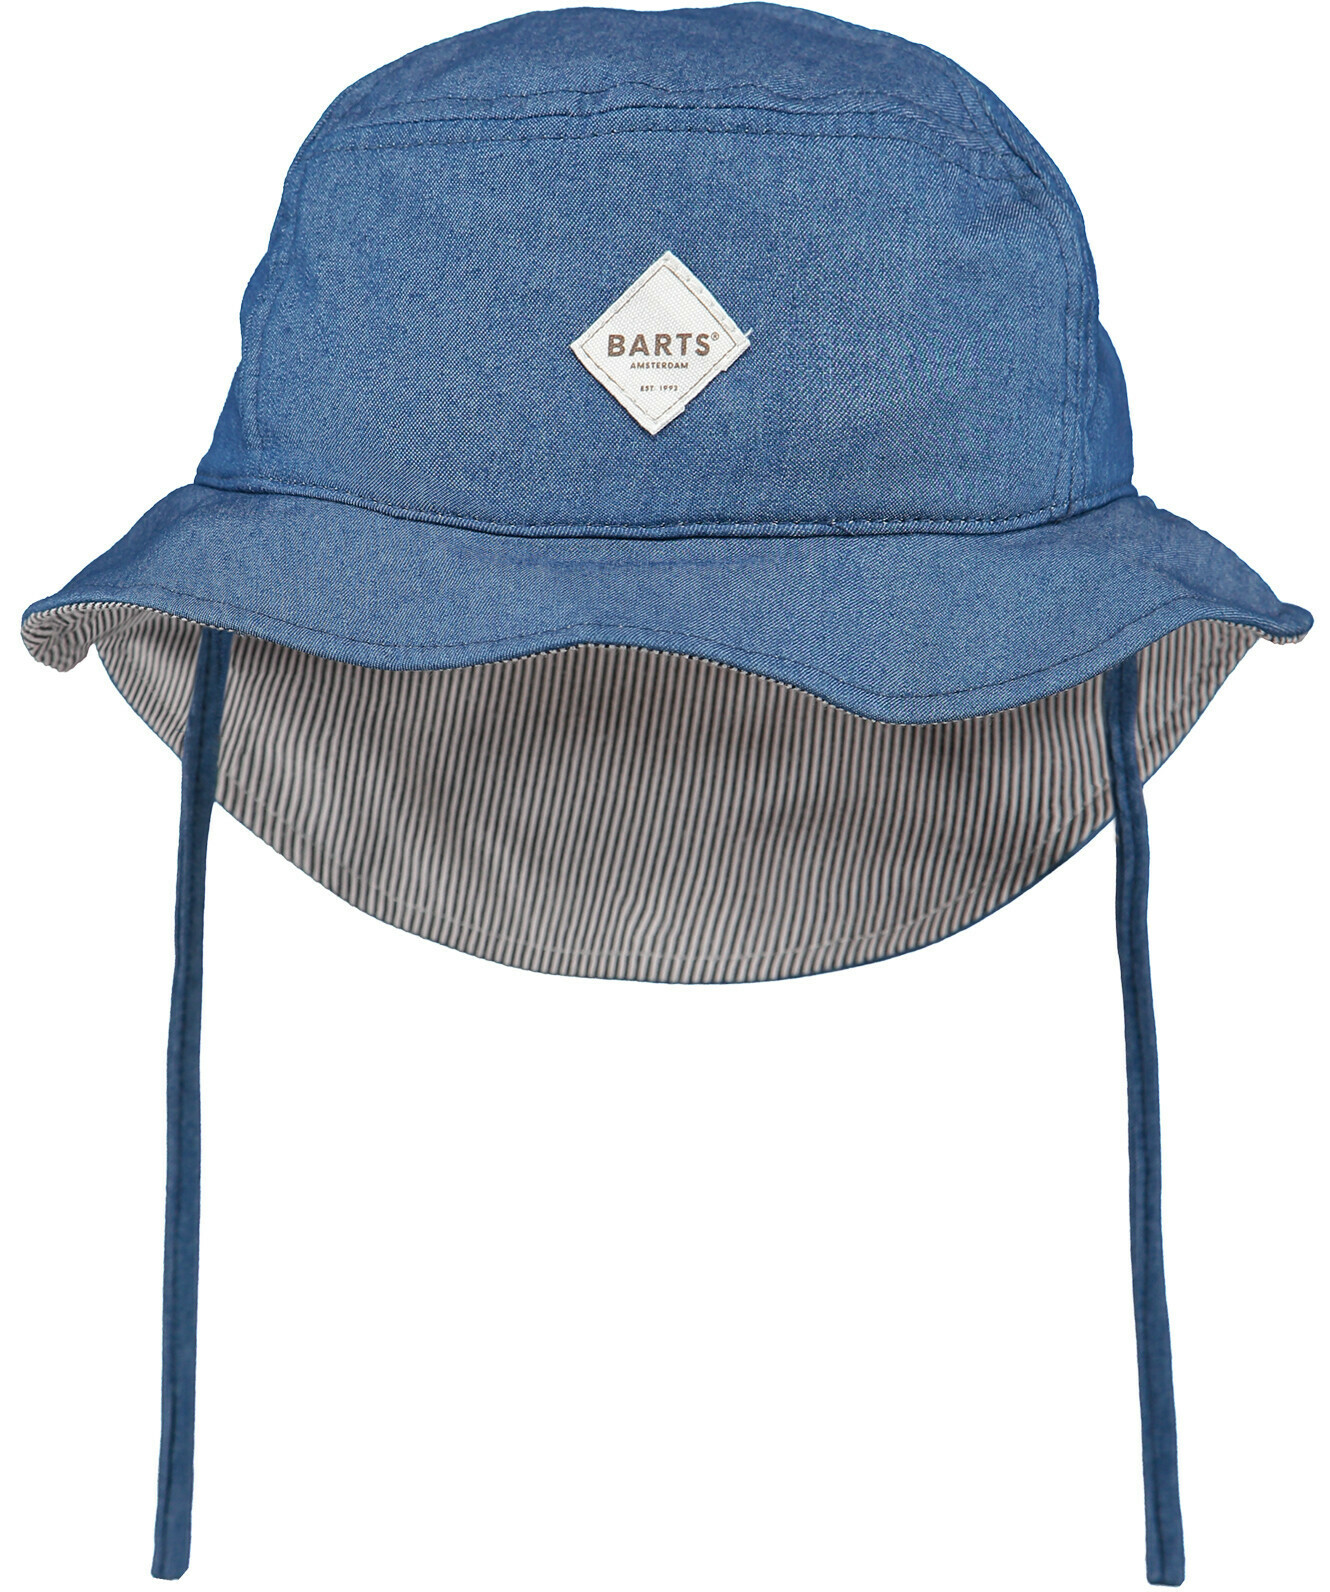 Lune Buckethat - denim